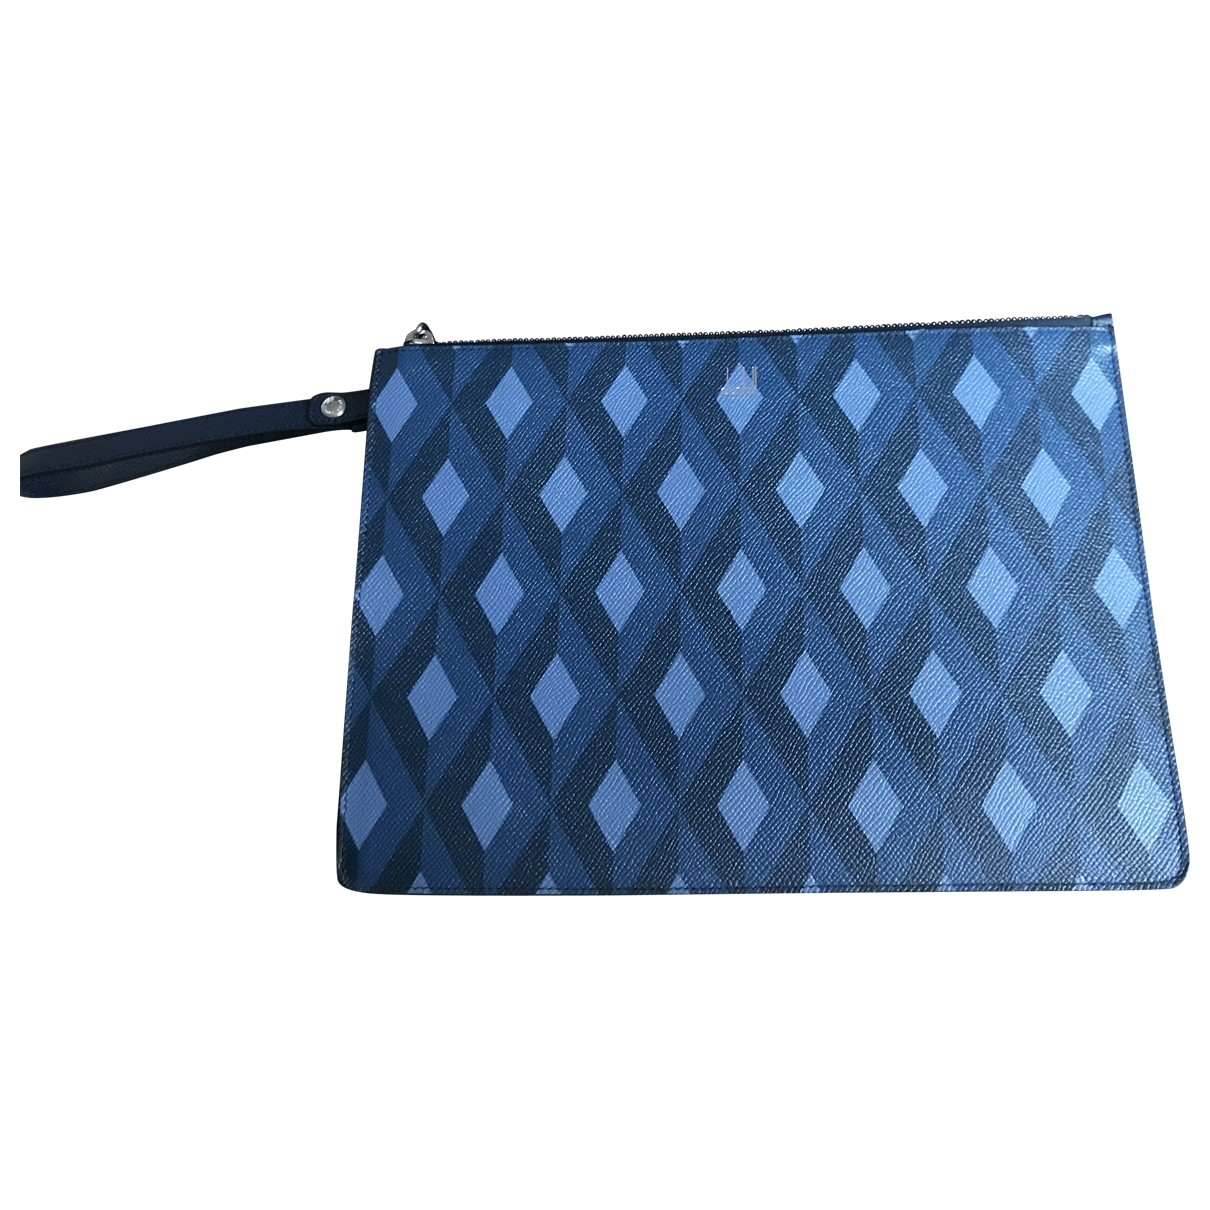 Alfred Dunhill \N Blue Cloth Small bag, wallet & cases for Men \N